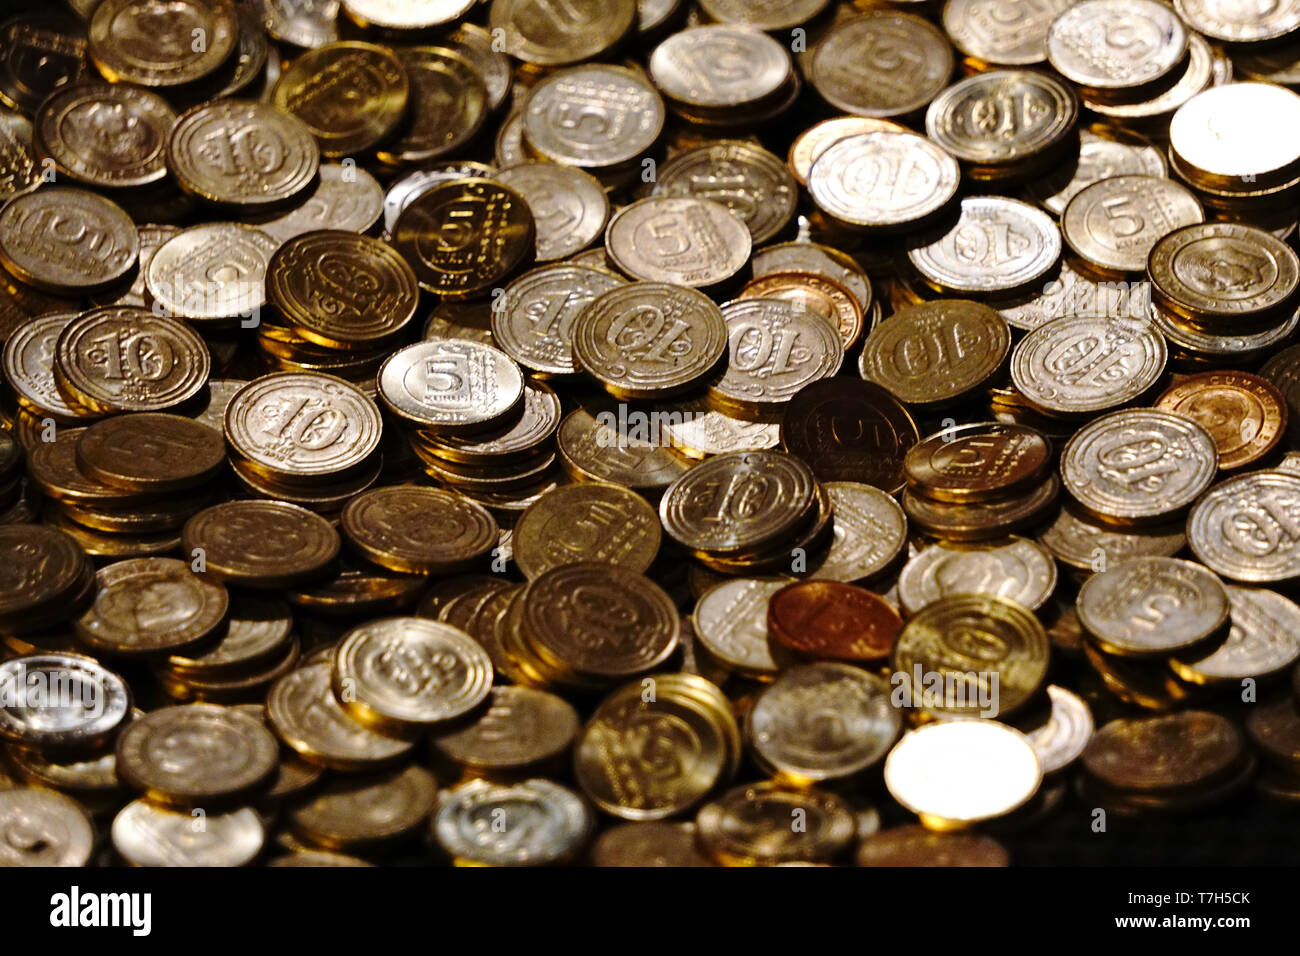 Turkish Lira Coins close up view Stock Photo